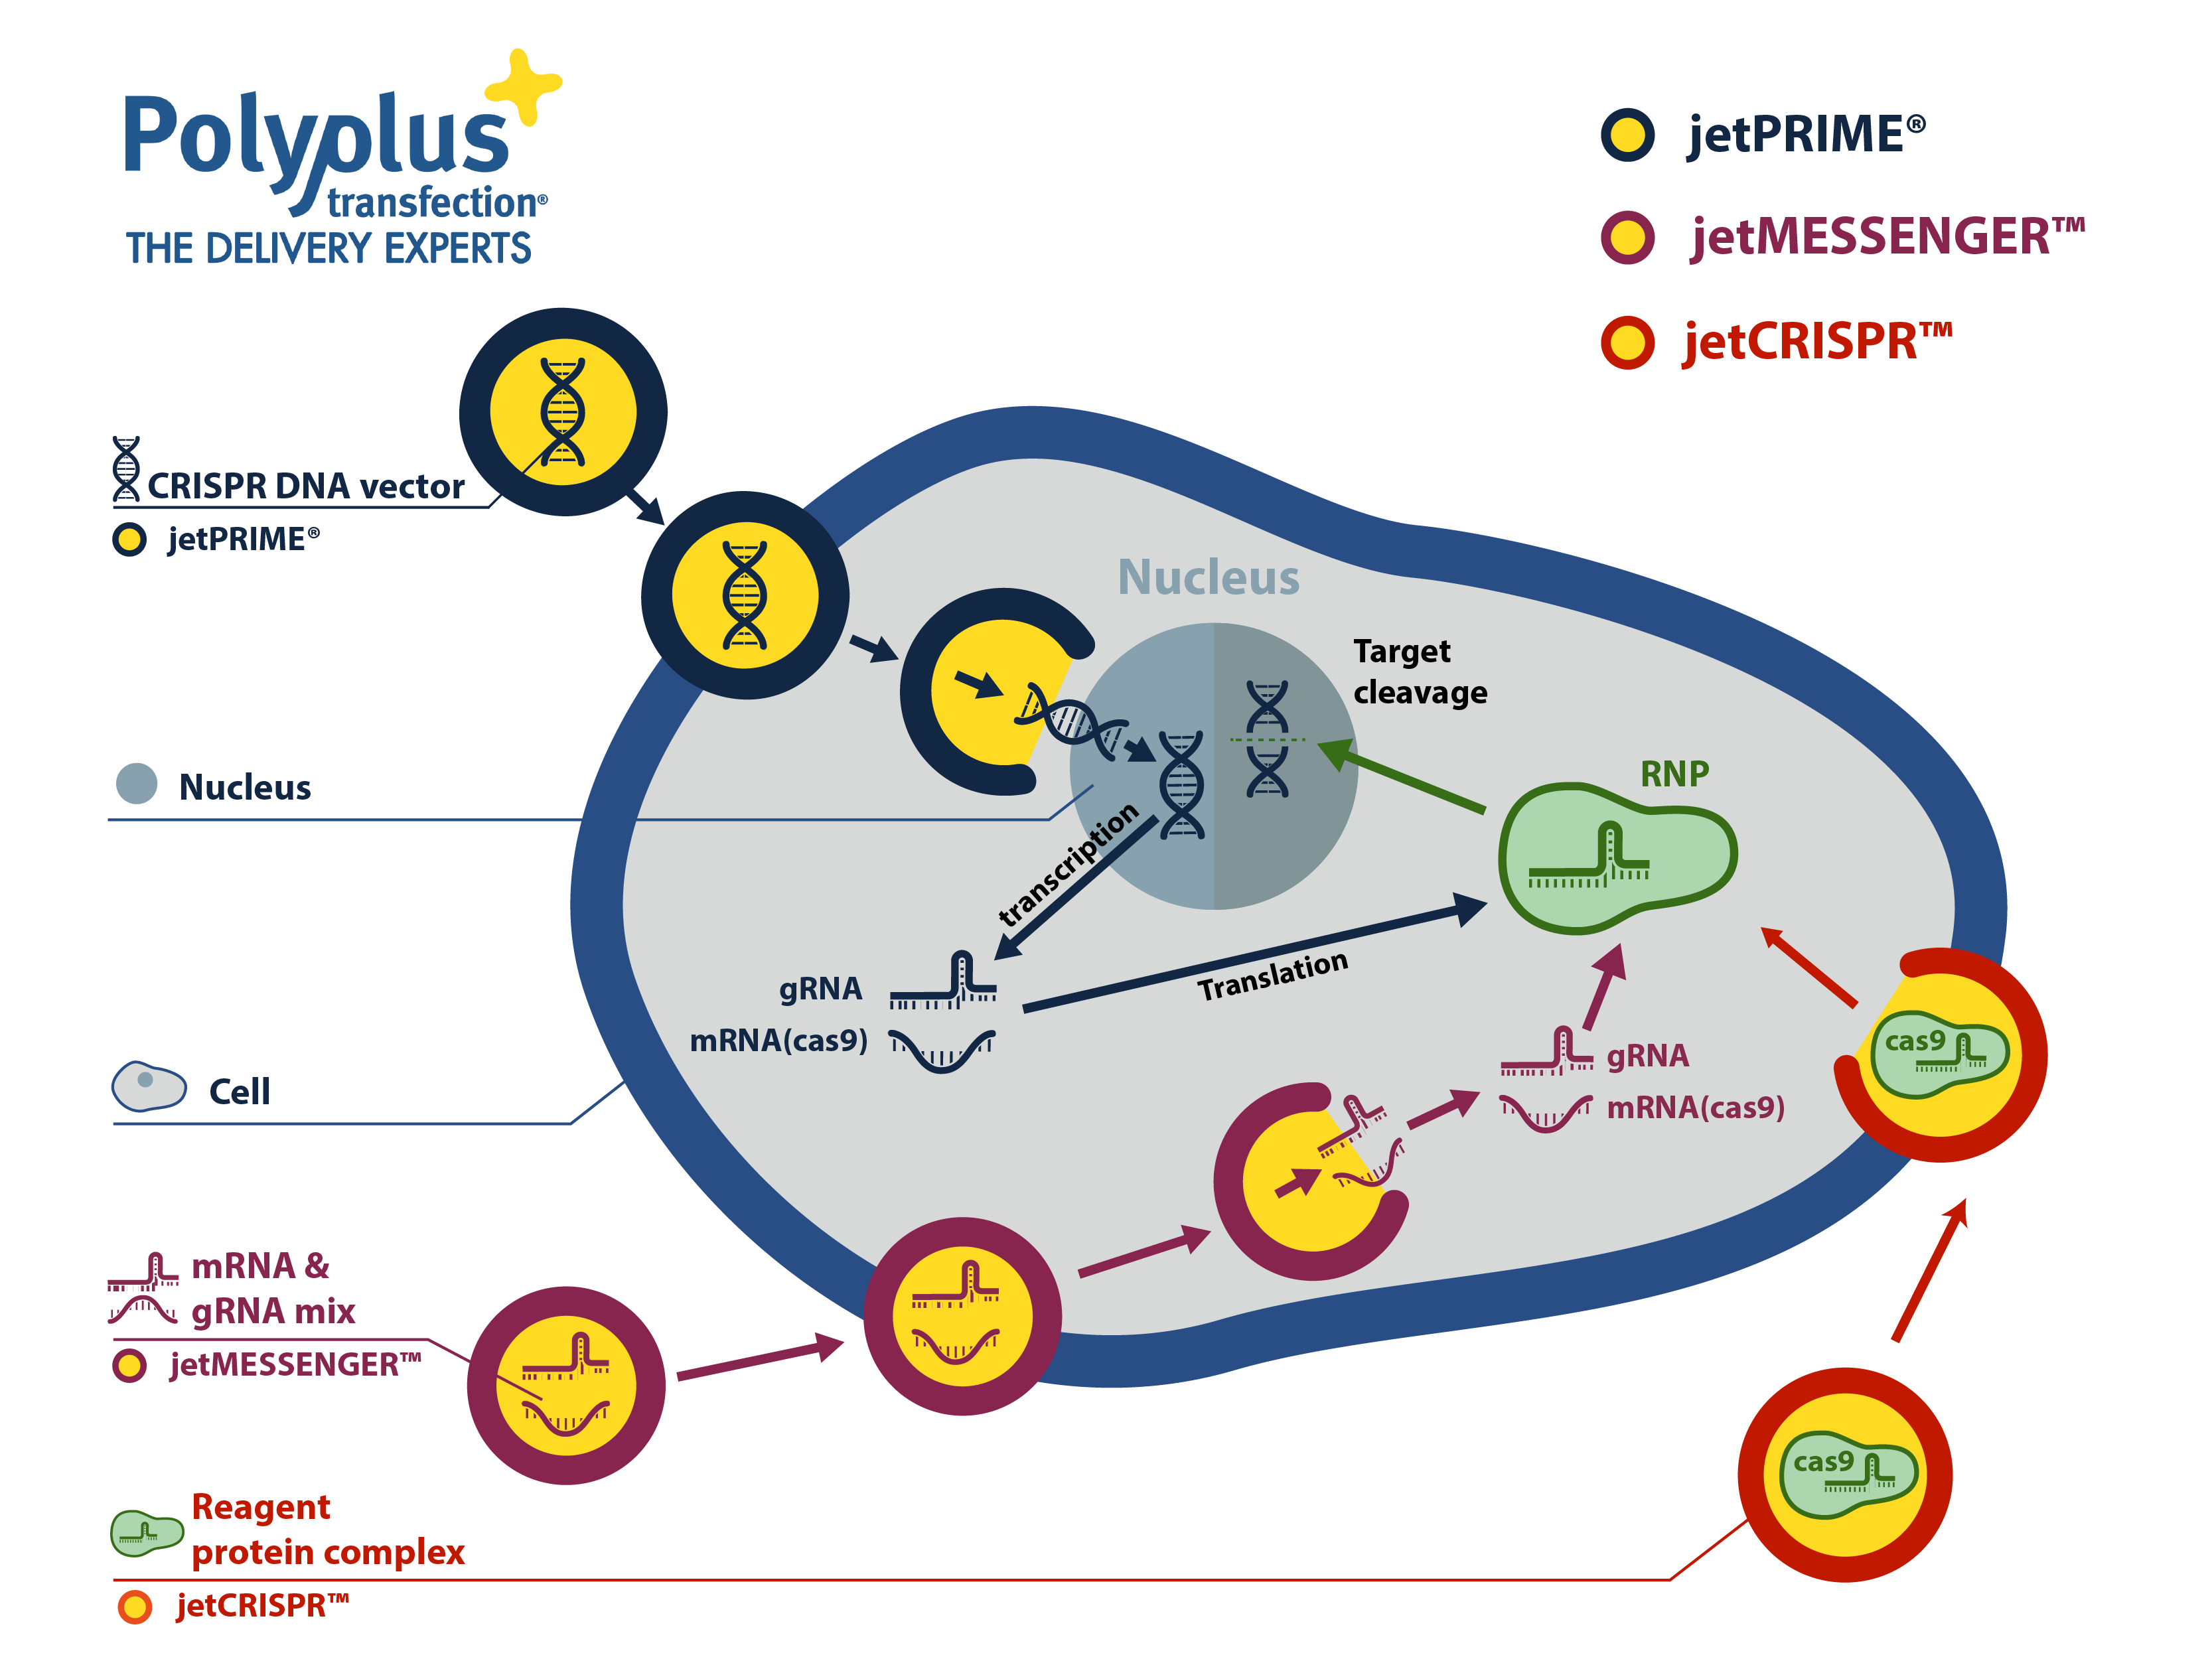 Fig. 6: Polyplus-transfection - Product range for CRSIPR experiment